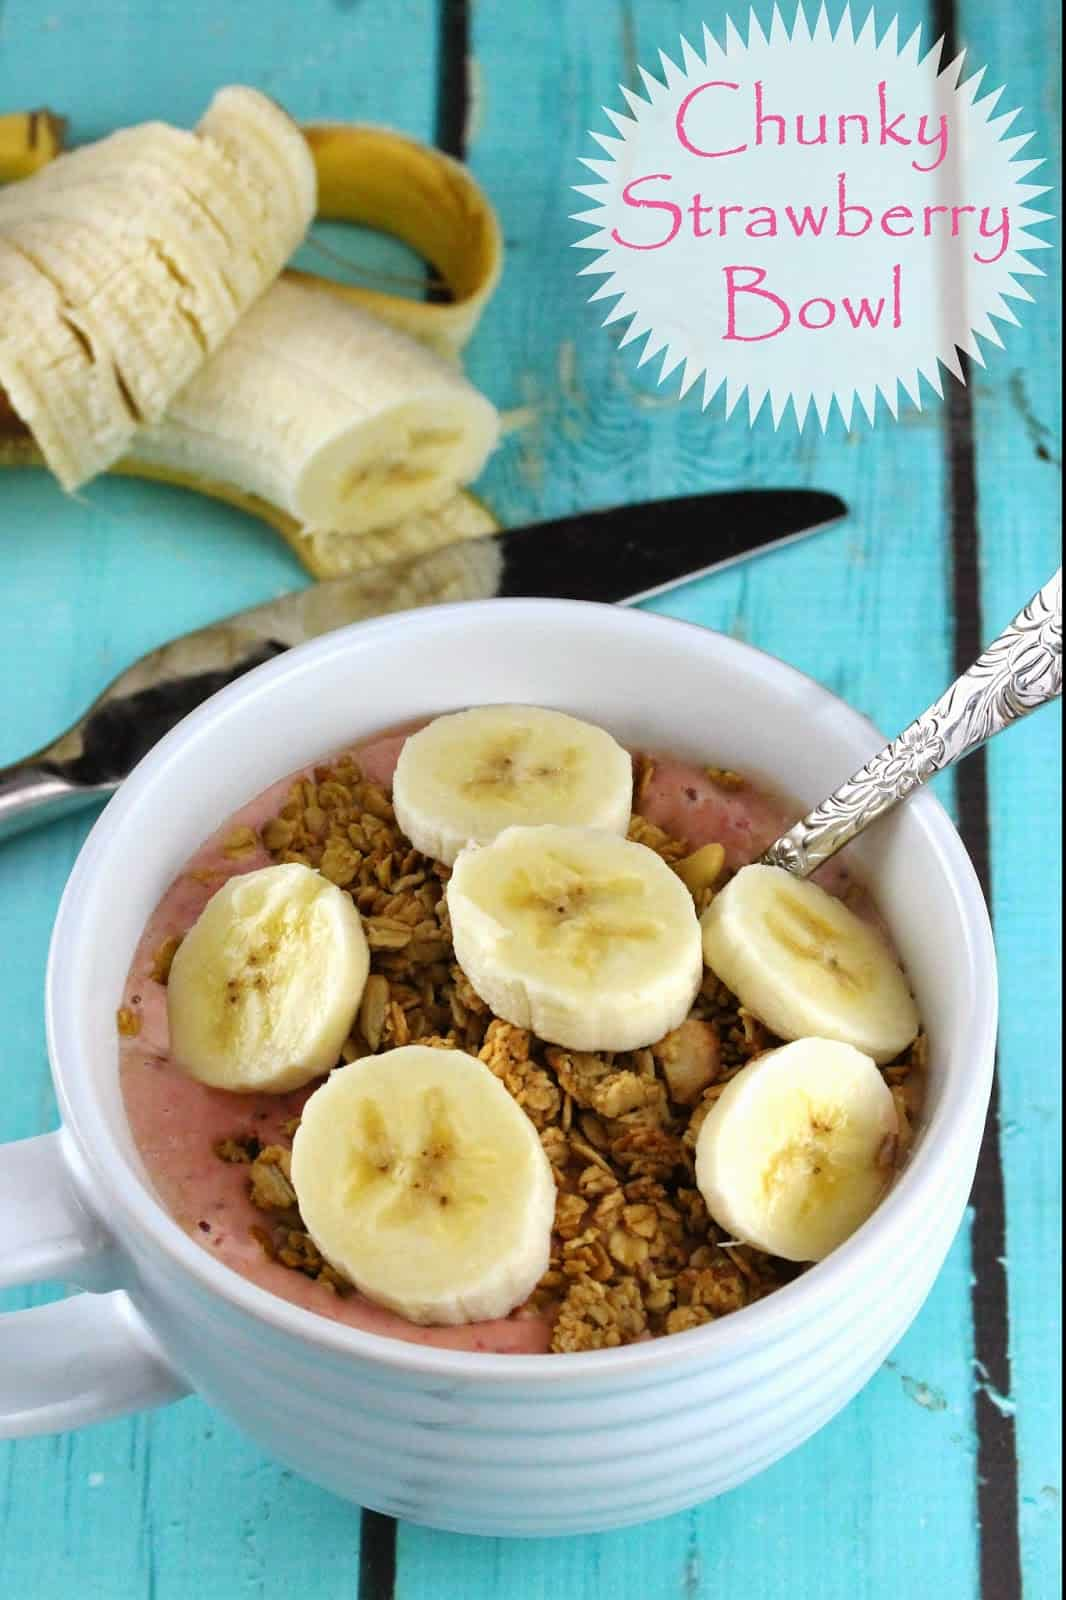 Chunky Strawberry Bowl: Granola with pureed strawberry and topped with sliced banana.